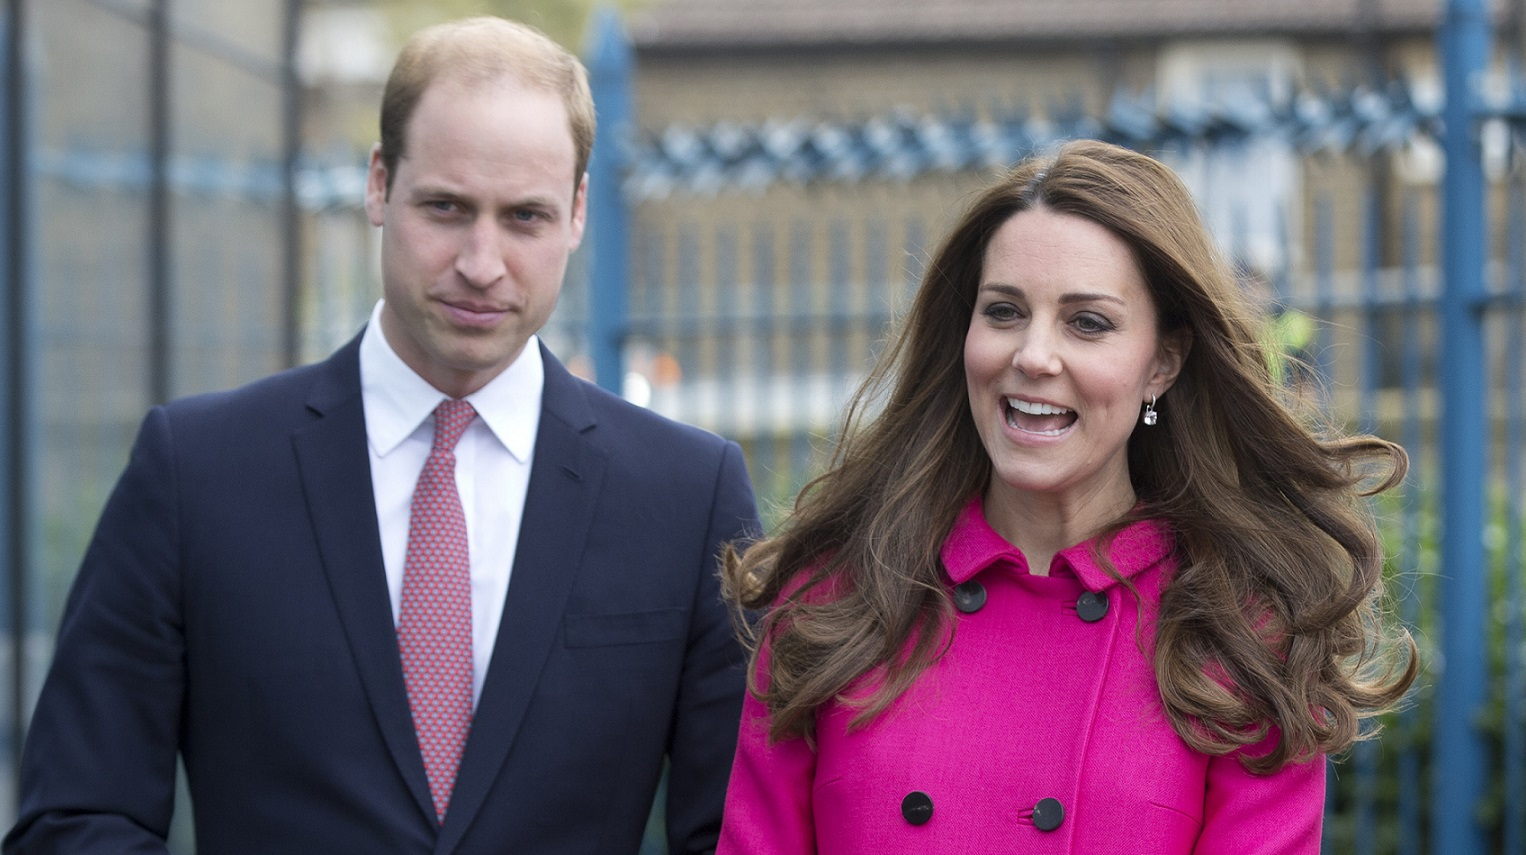 The Duke and Duchess of Cambridge to tour India in 2016